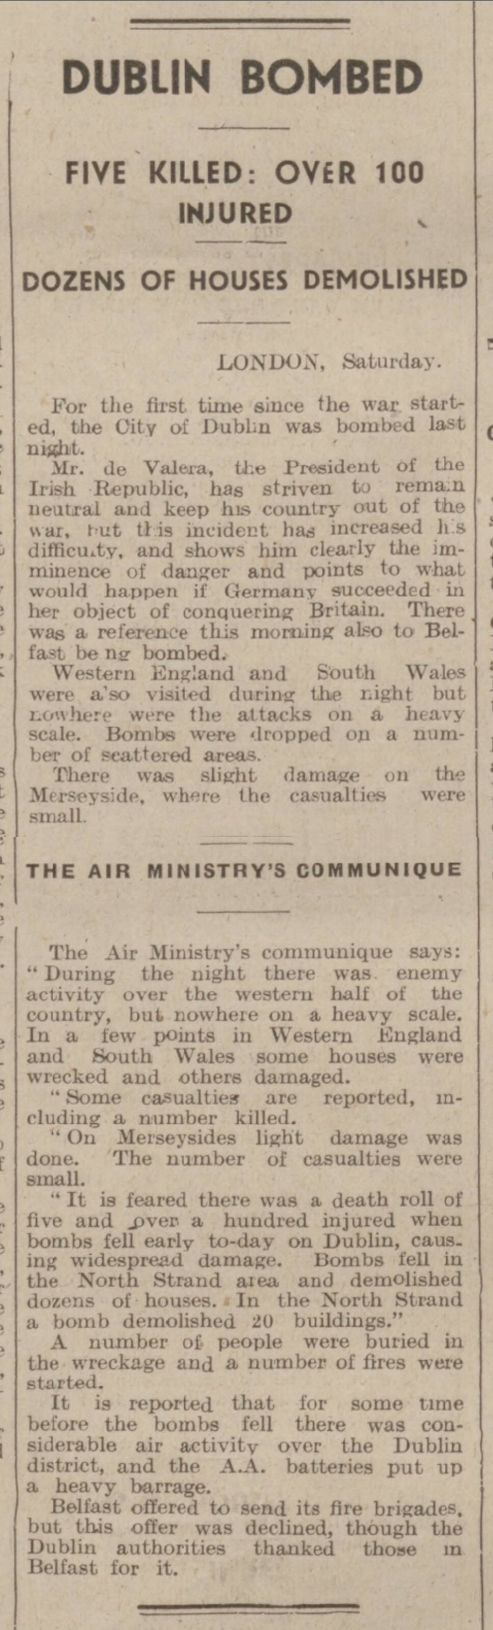 The Bombing of Dublin by the Luftwaffe – 31 May 1941 http://blog.britishnewspaperarchive.co.uk/2013/05/30/the-bombing-of-dublin-by-the-luftwaffe-31-may-1941/ de Valera wasn't President, he was the Irish Prime Minister.